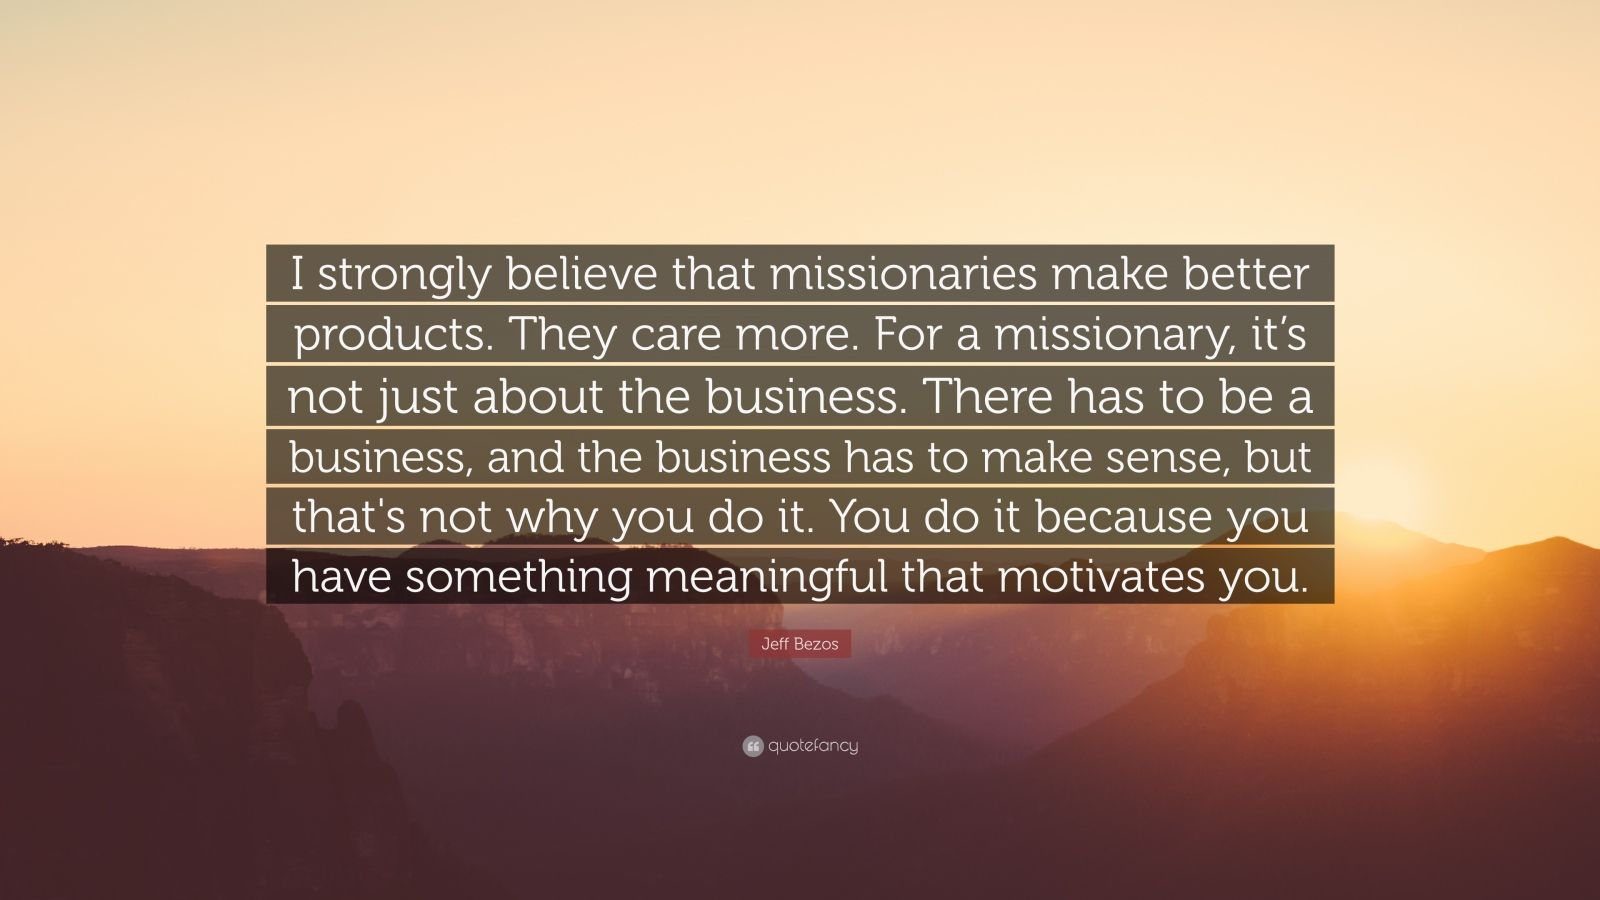 """Jeff Bezos Quote: """"I strongly believe that missionaries make better products. They care more. For a missionary, it's not just about the business. There has to be a business, and the business has to make sense, but that's not why you do it. You do it because you have something meaningful that motivates you."""""""